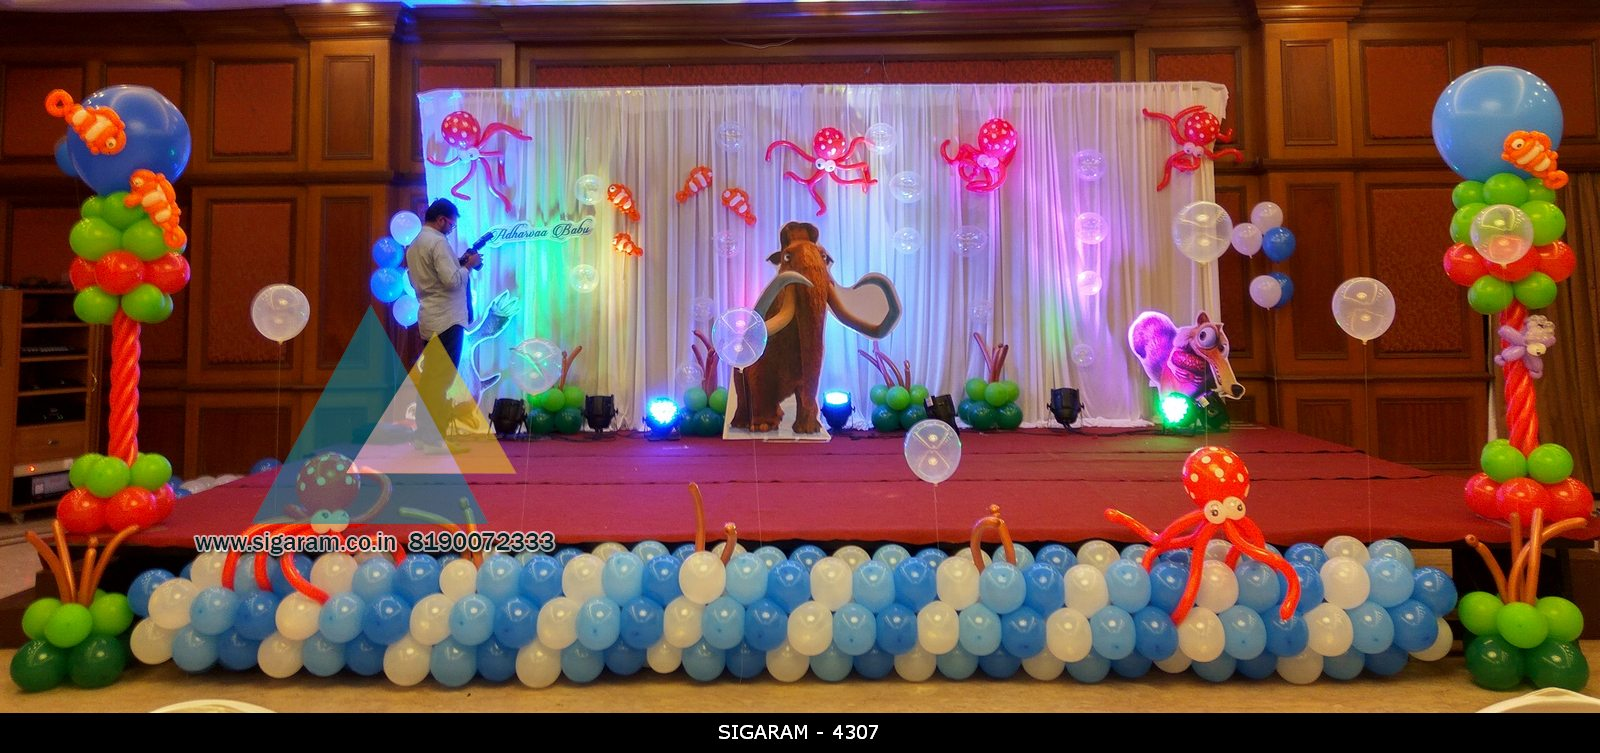 Themed birthday party decoration at hotel shenbaga for 1st birthday hall decoration ideas